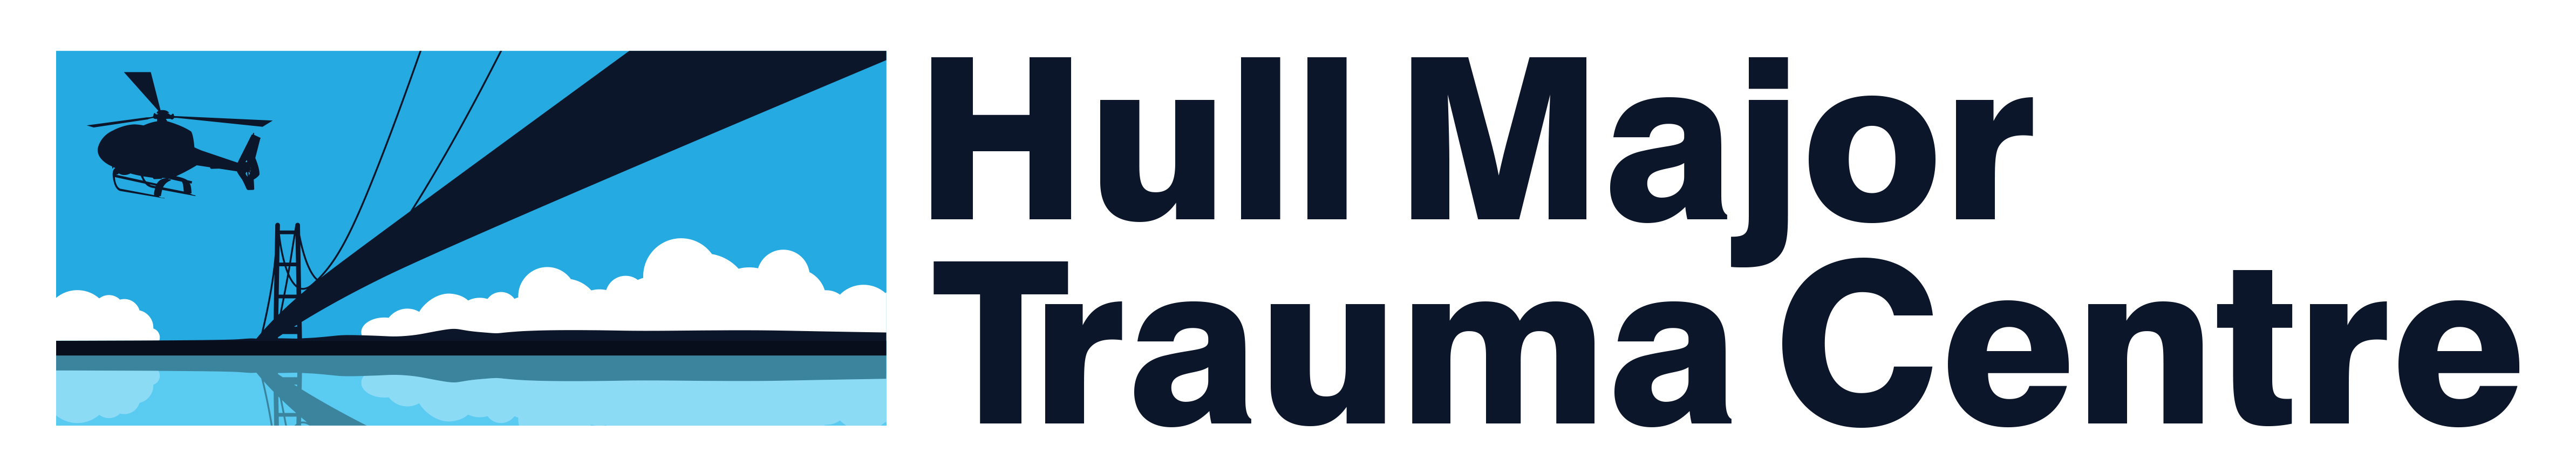 Hull Major Trauma Centre